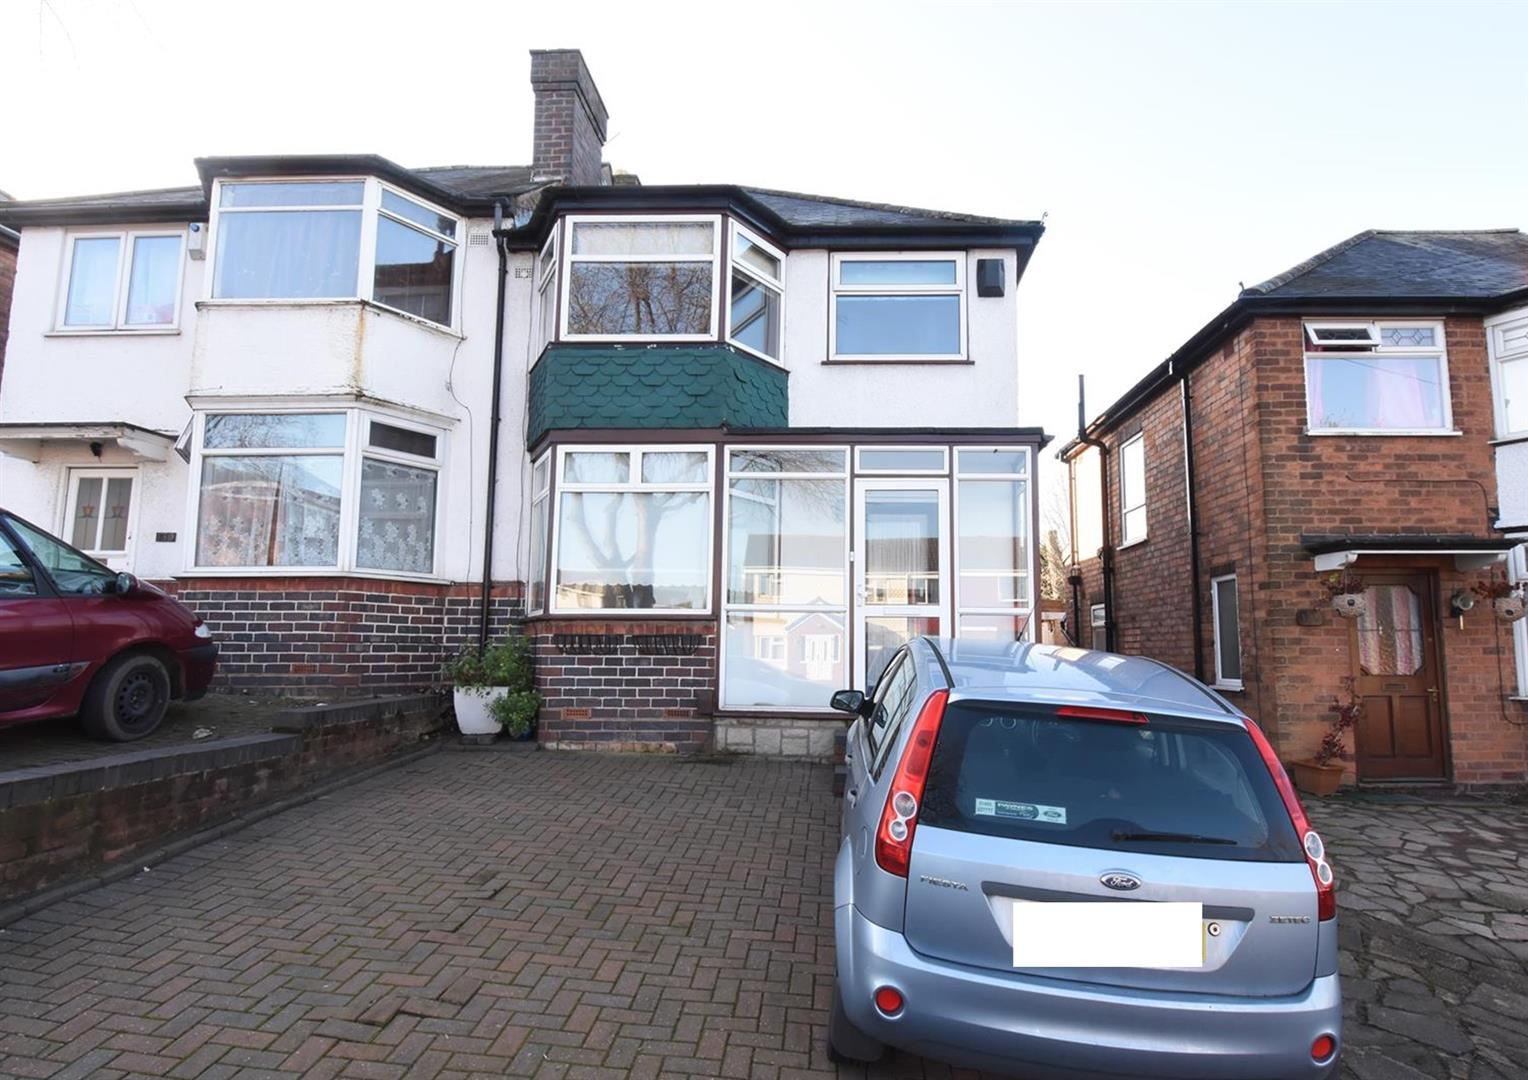 3 bed house for sale in Bromford Road, Hodge Hill, Birmingham B36 8HR - Property Image 1